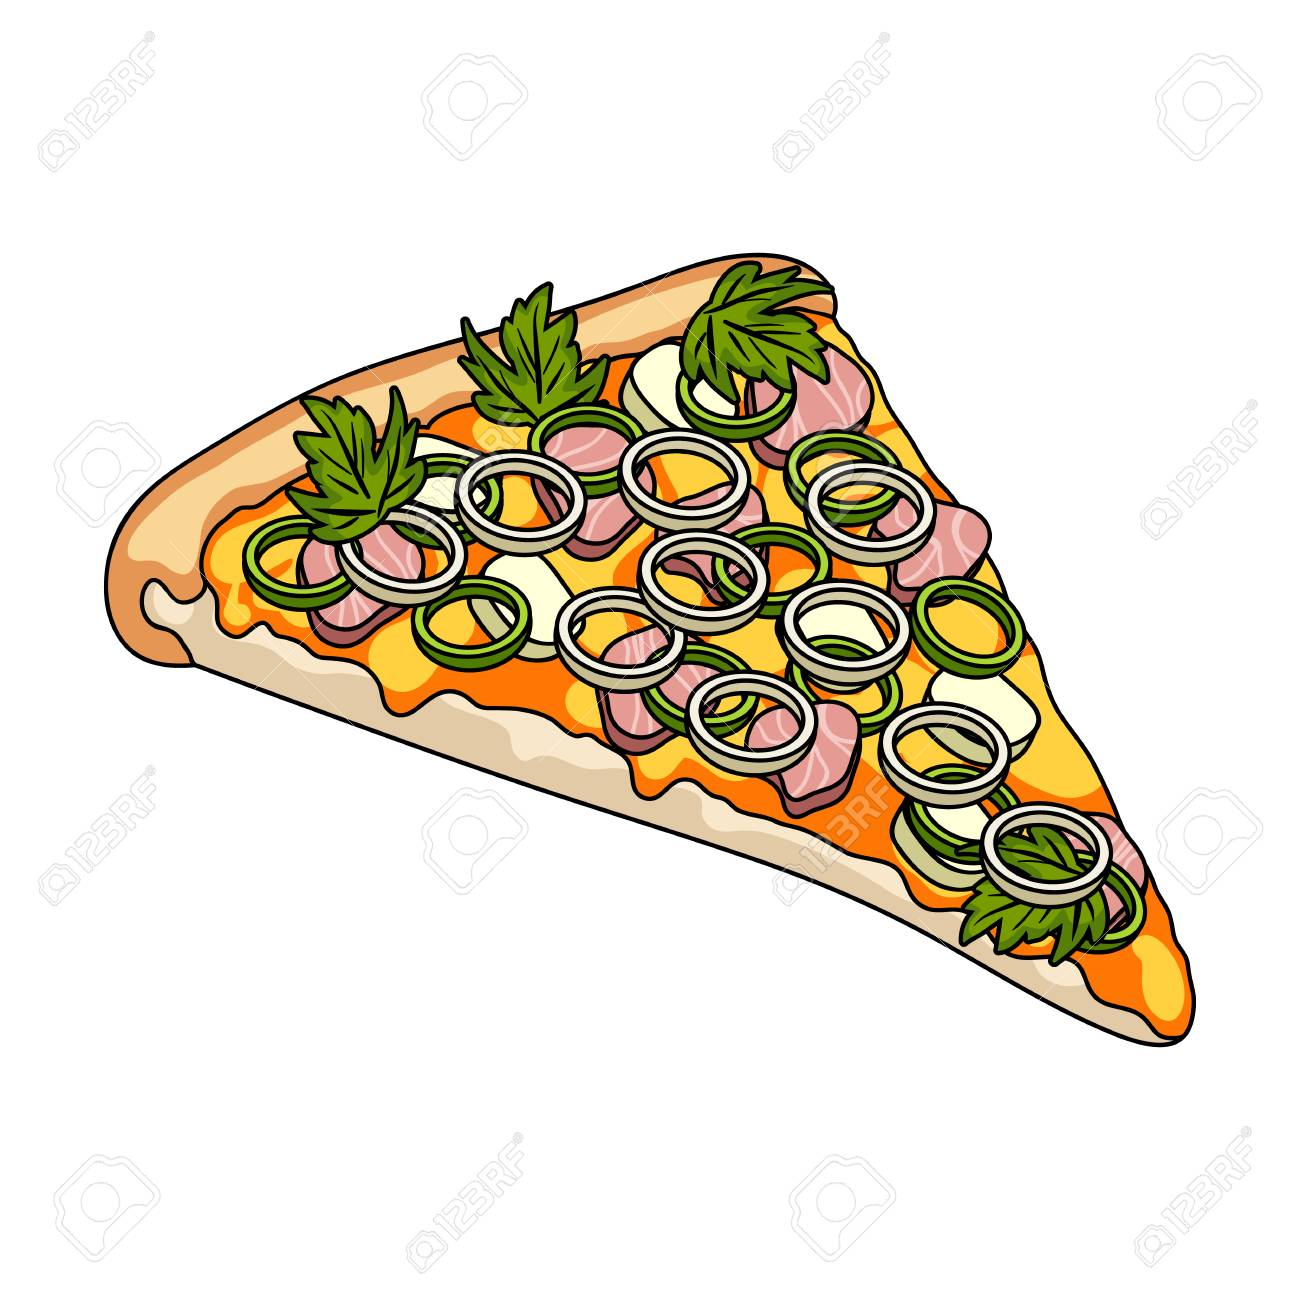 a slice of pizza with different ingredients different pizza rh 123rf com Sliced Mushroom Clip Art Good Eats Clip Art